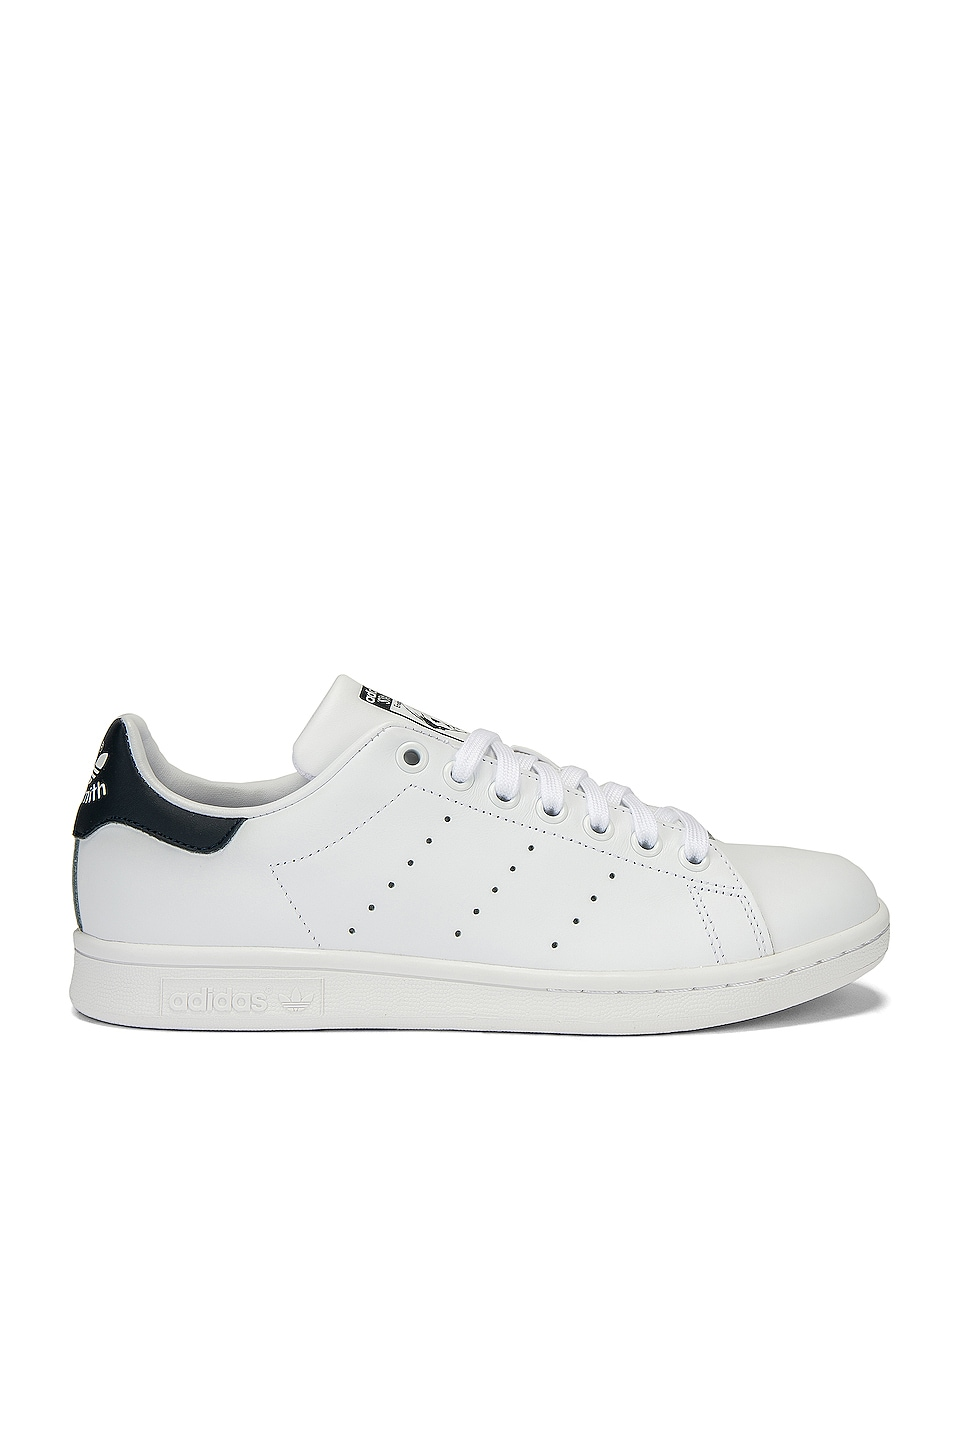 adidas Originals Stan Smith en White & Dark Blue